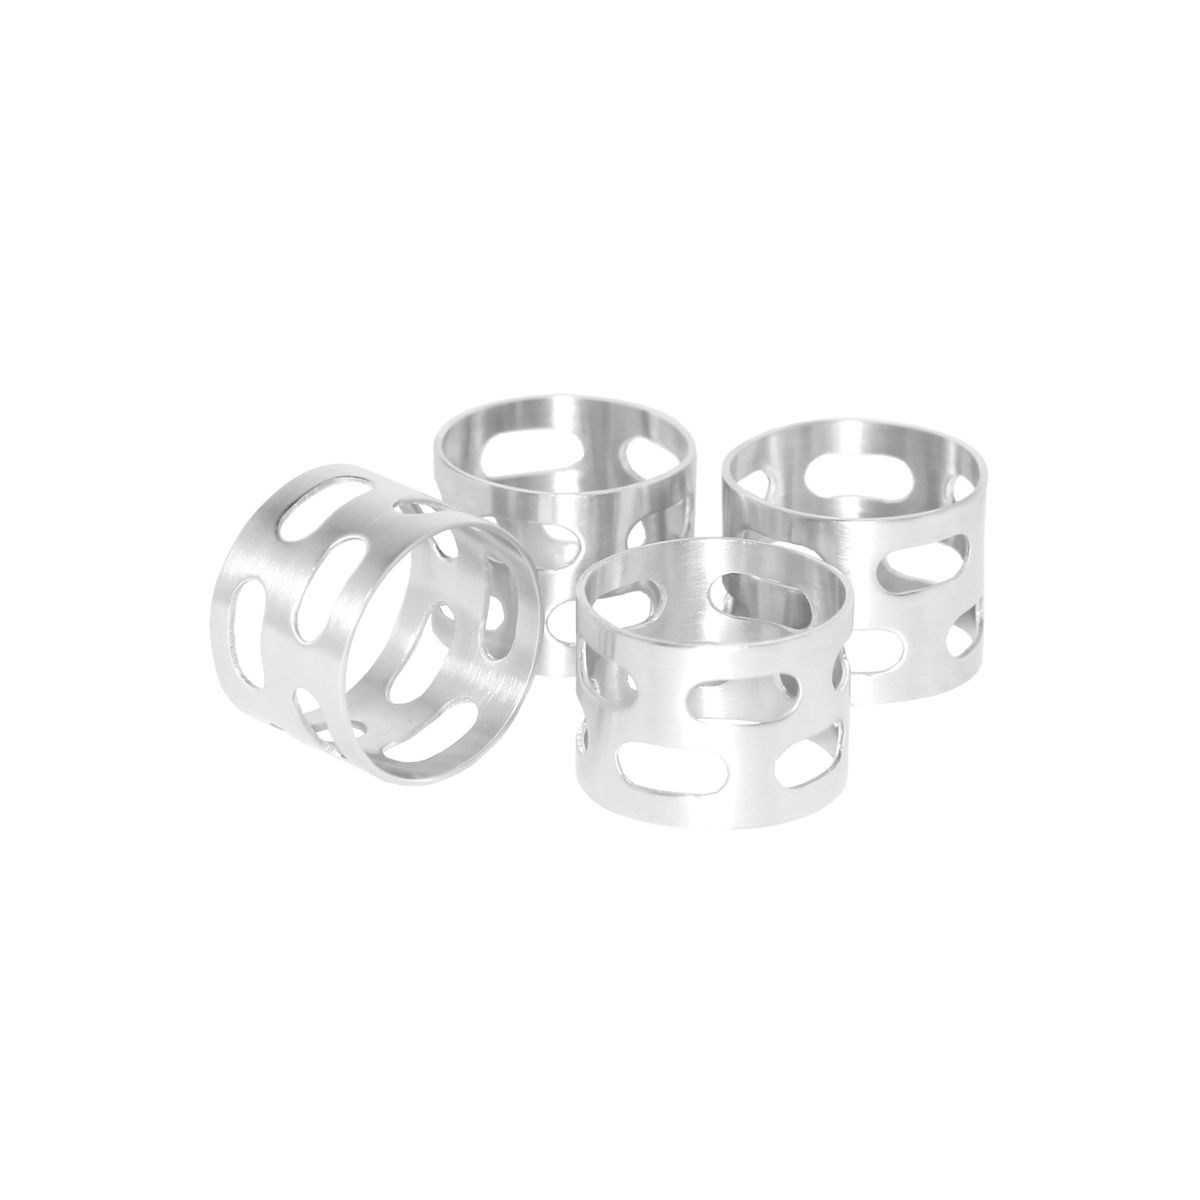 "Service Ideas SB-67 SteelForme Napkin Ring Set 1.5"" Dia."